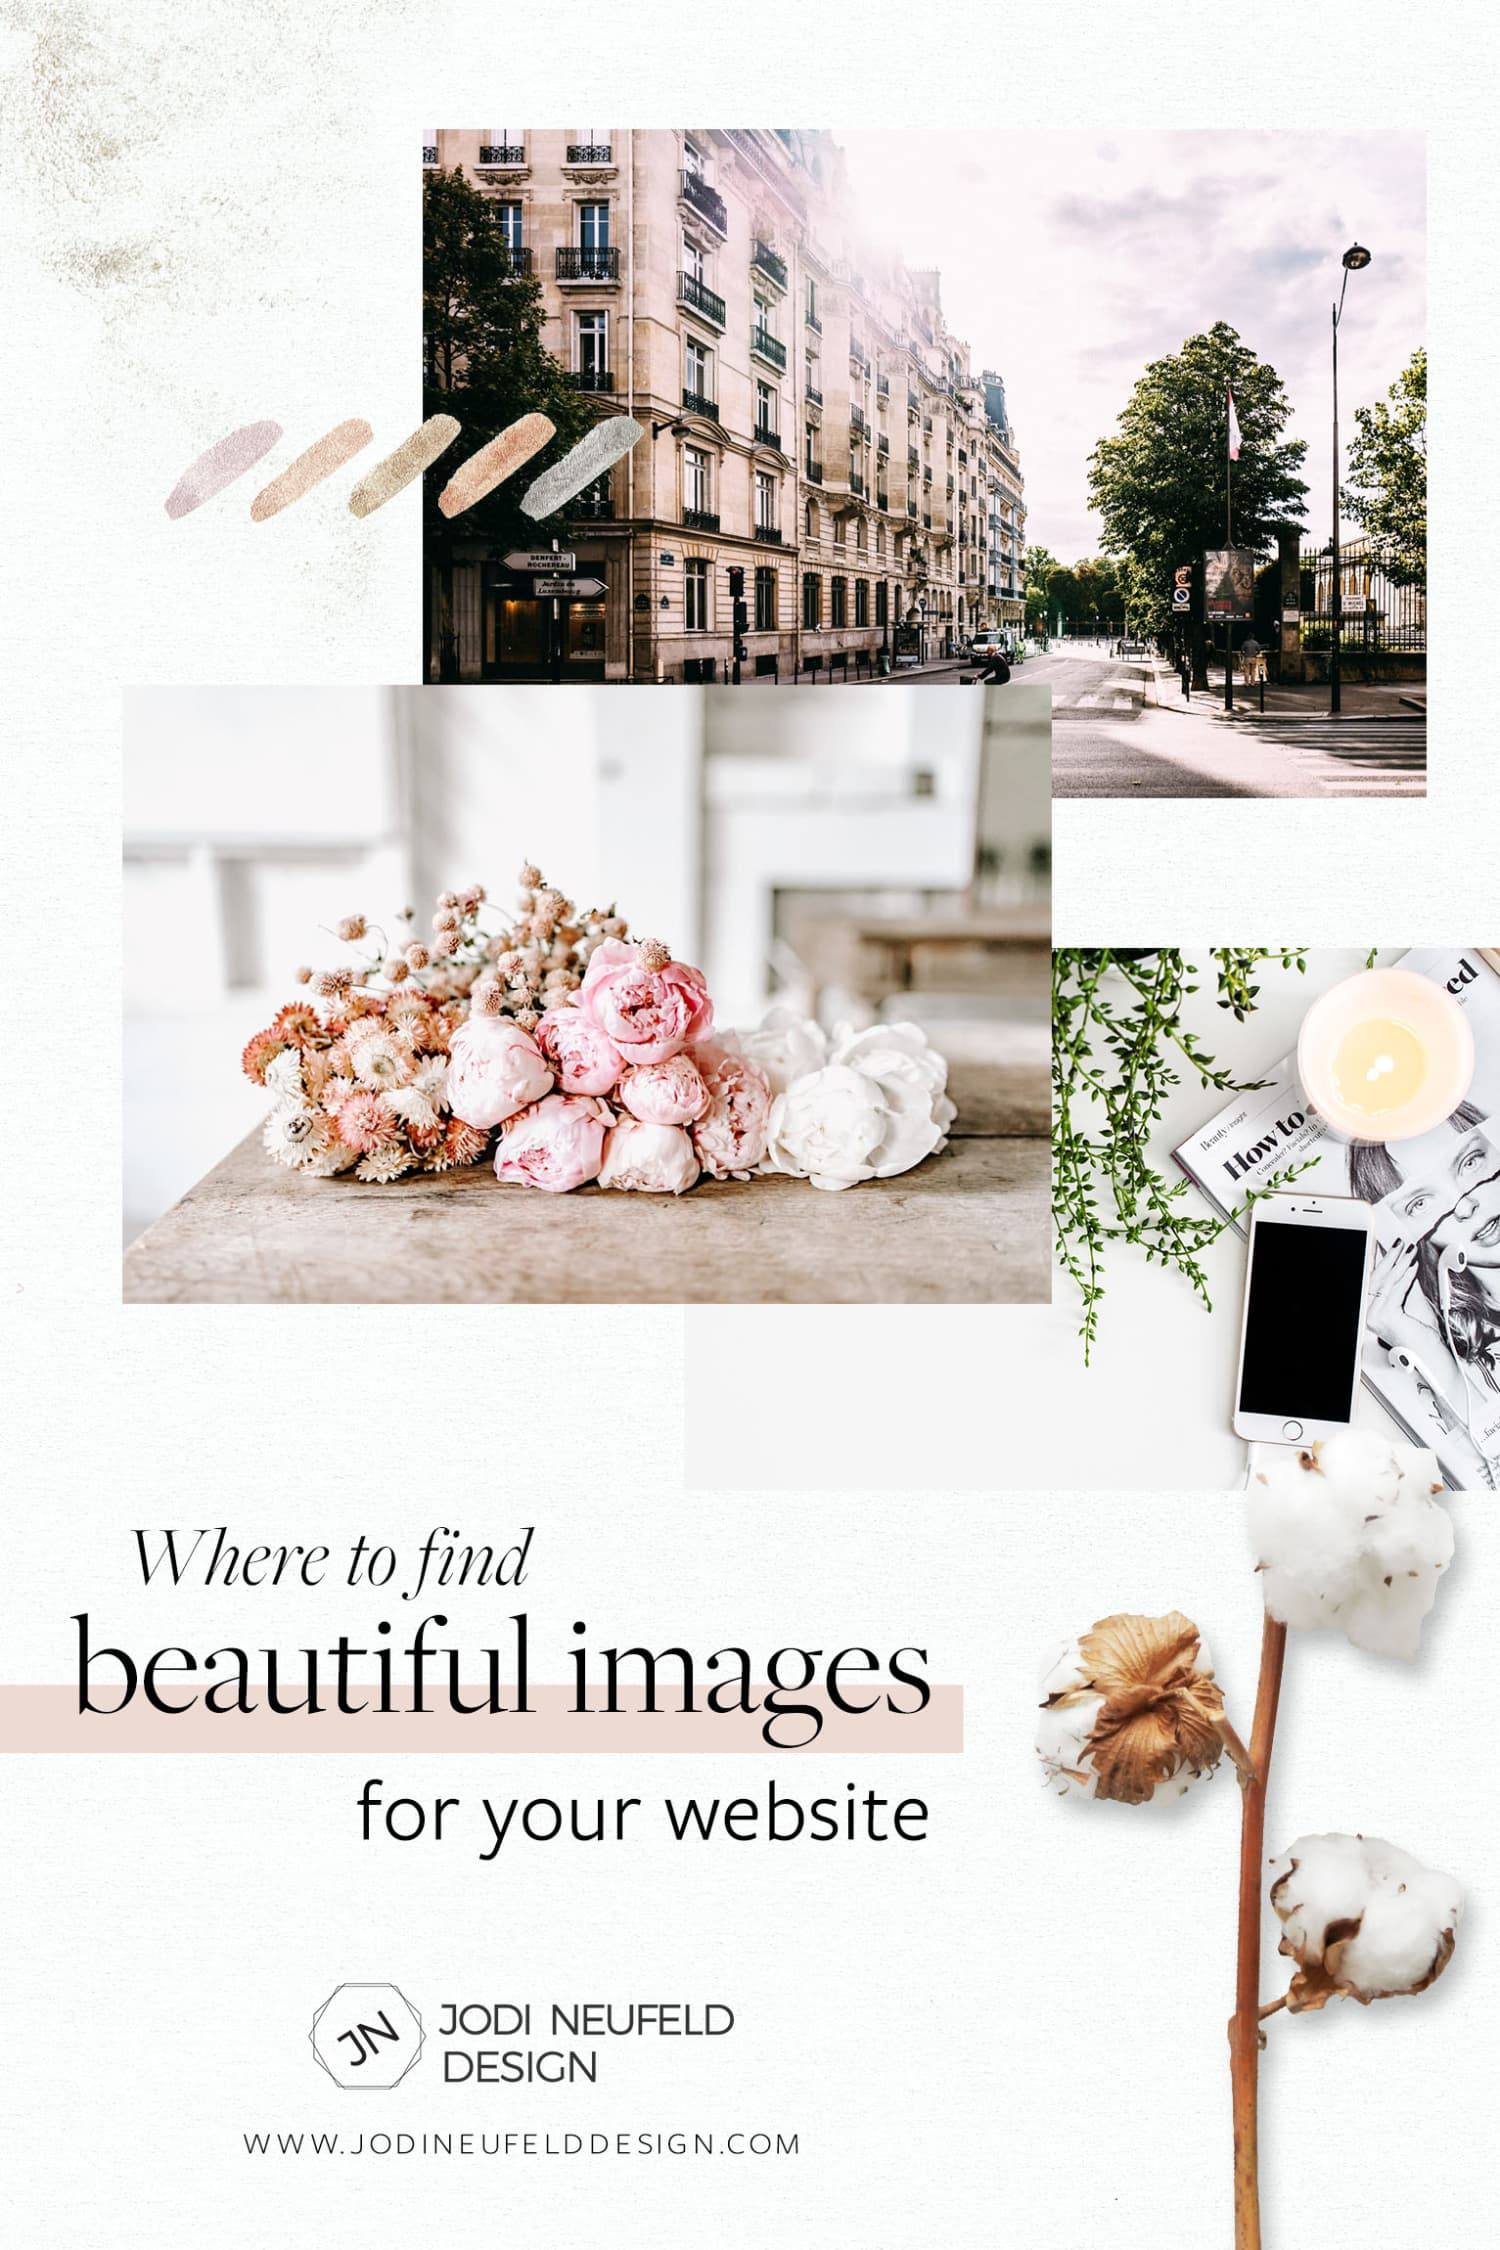 Where to find beautiful images for your website by Jodi Neufeld Design #squarespace #webdesign